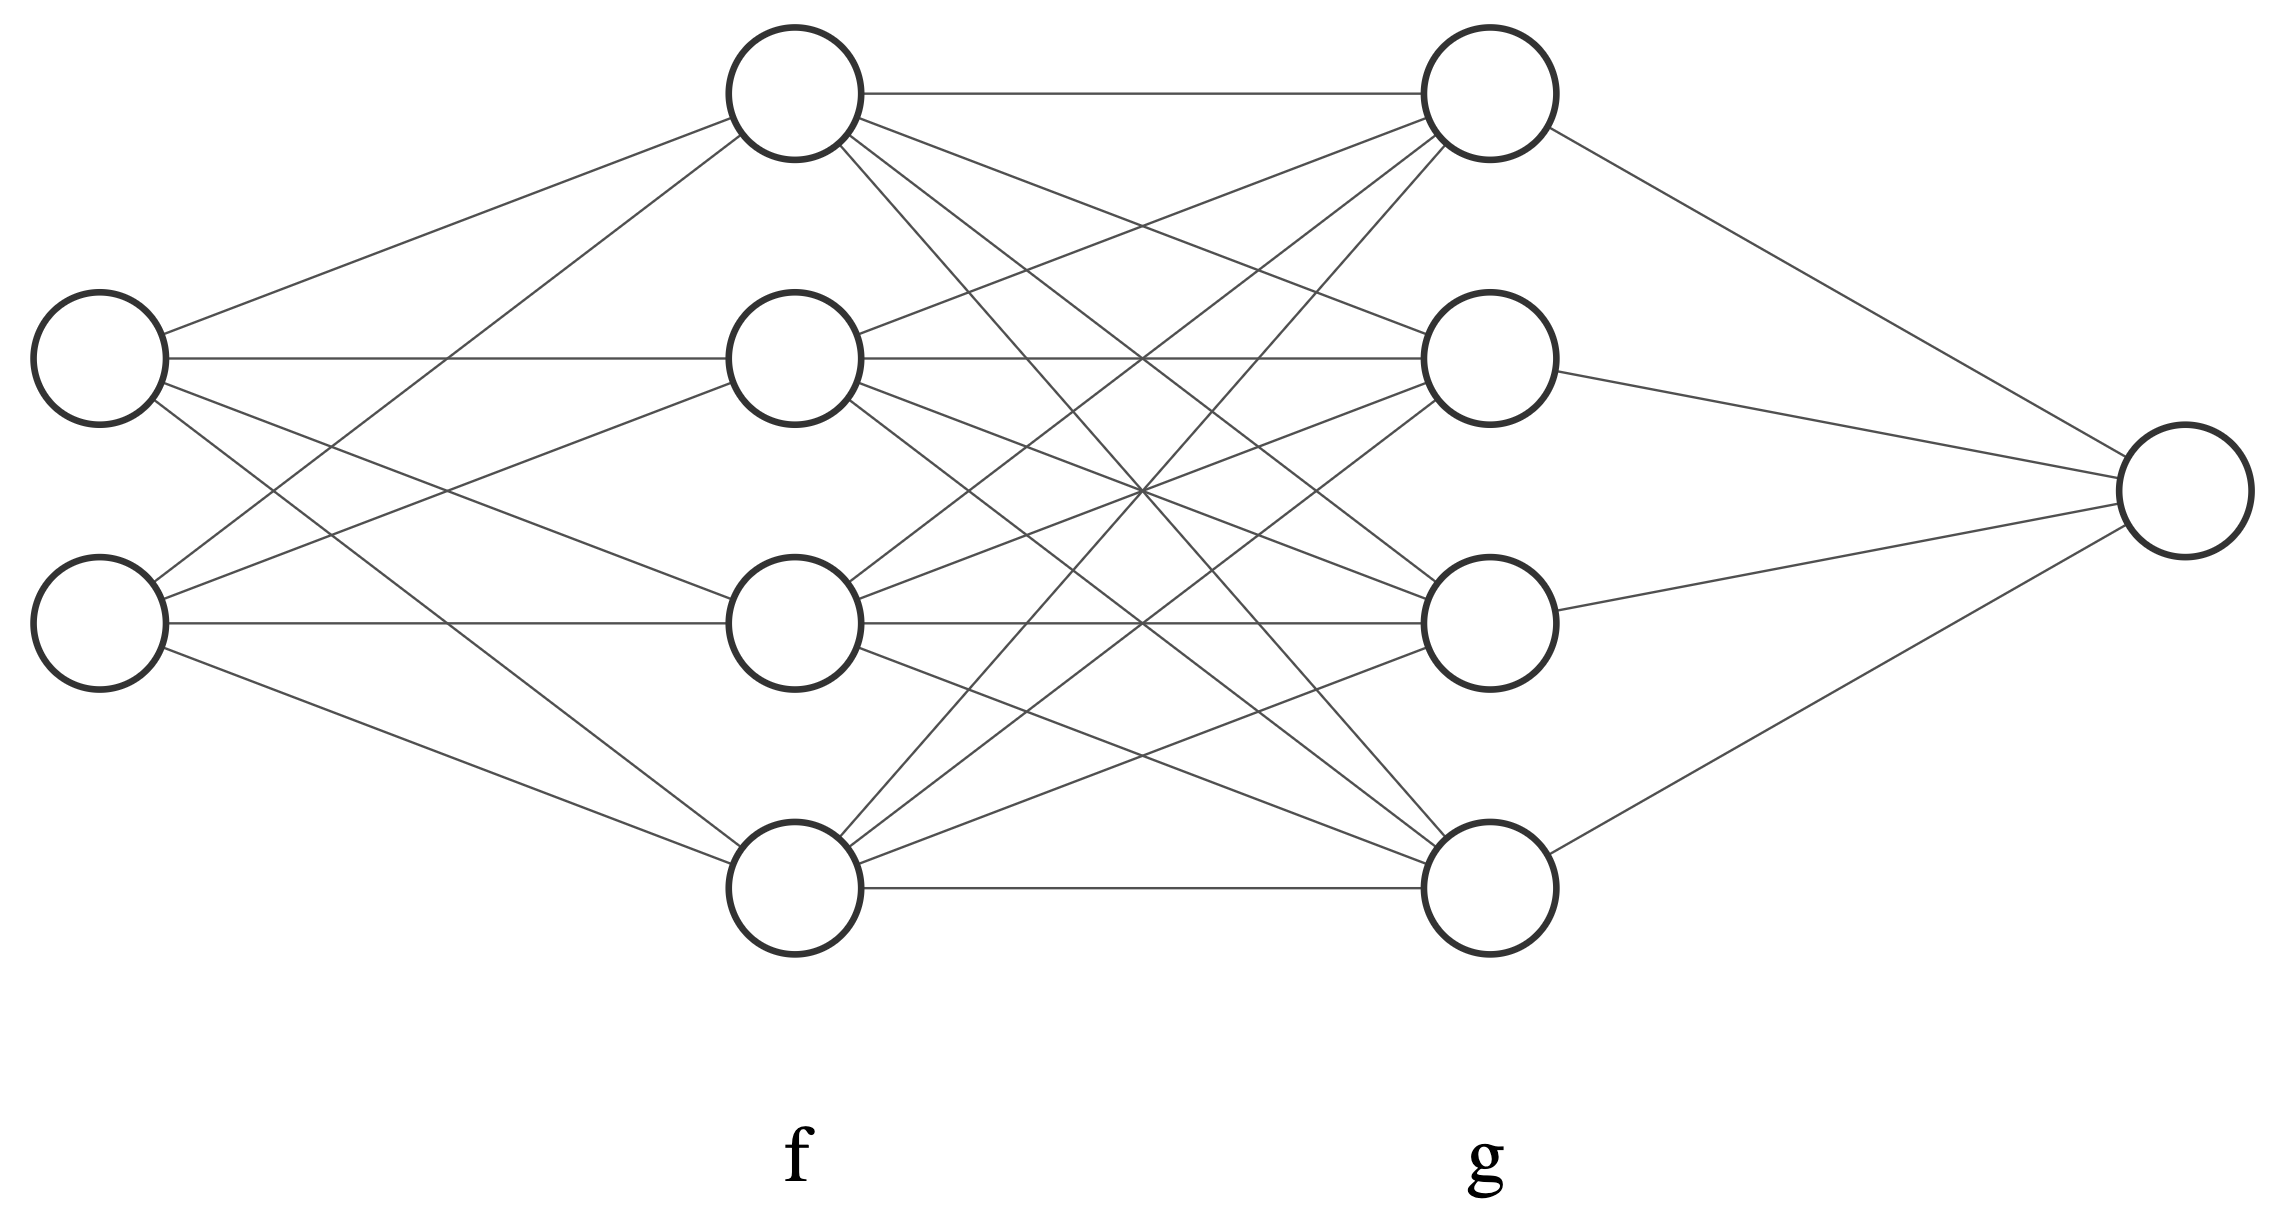 A neural network with two hidden layers f and g